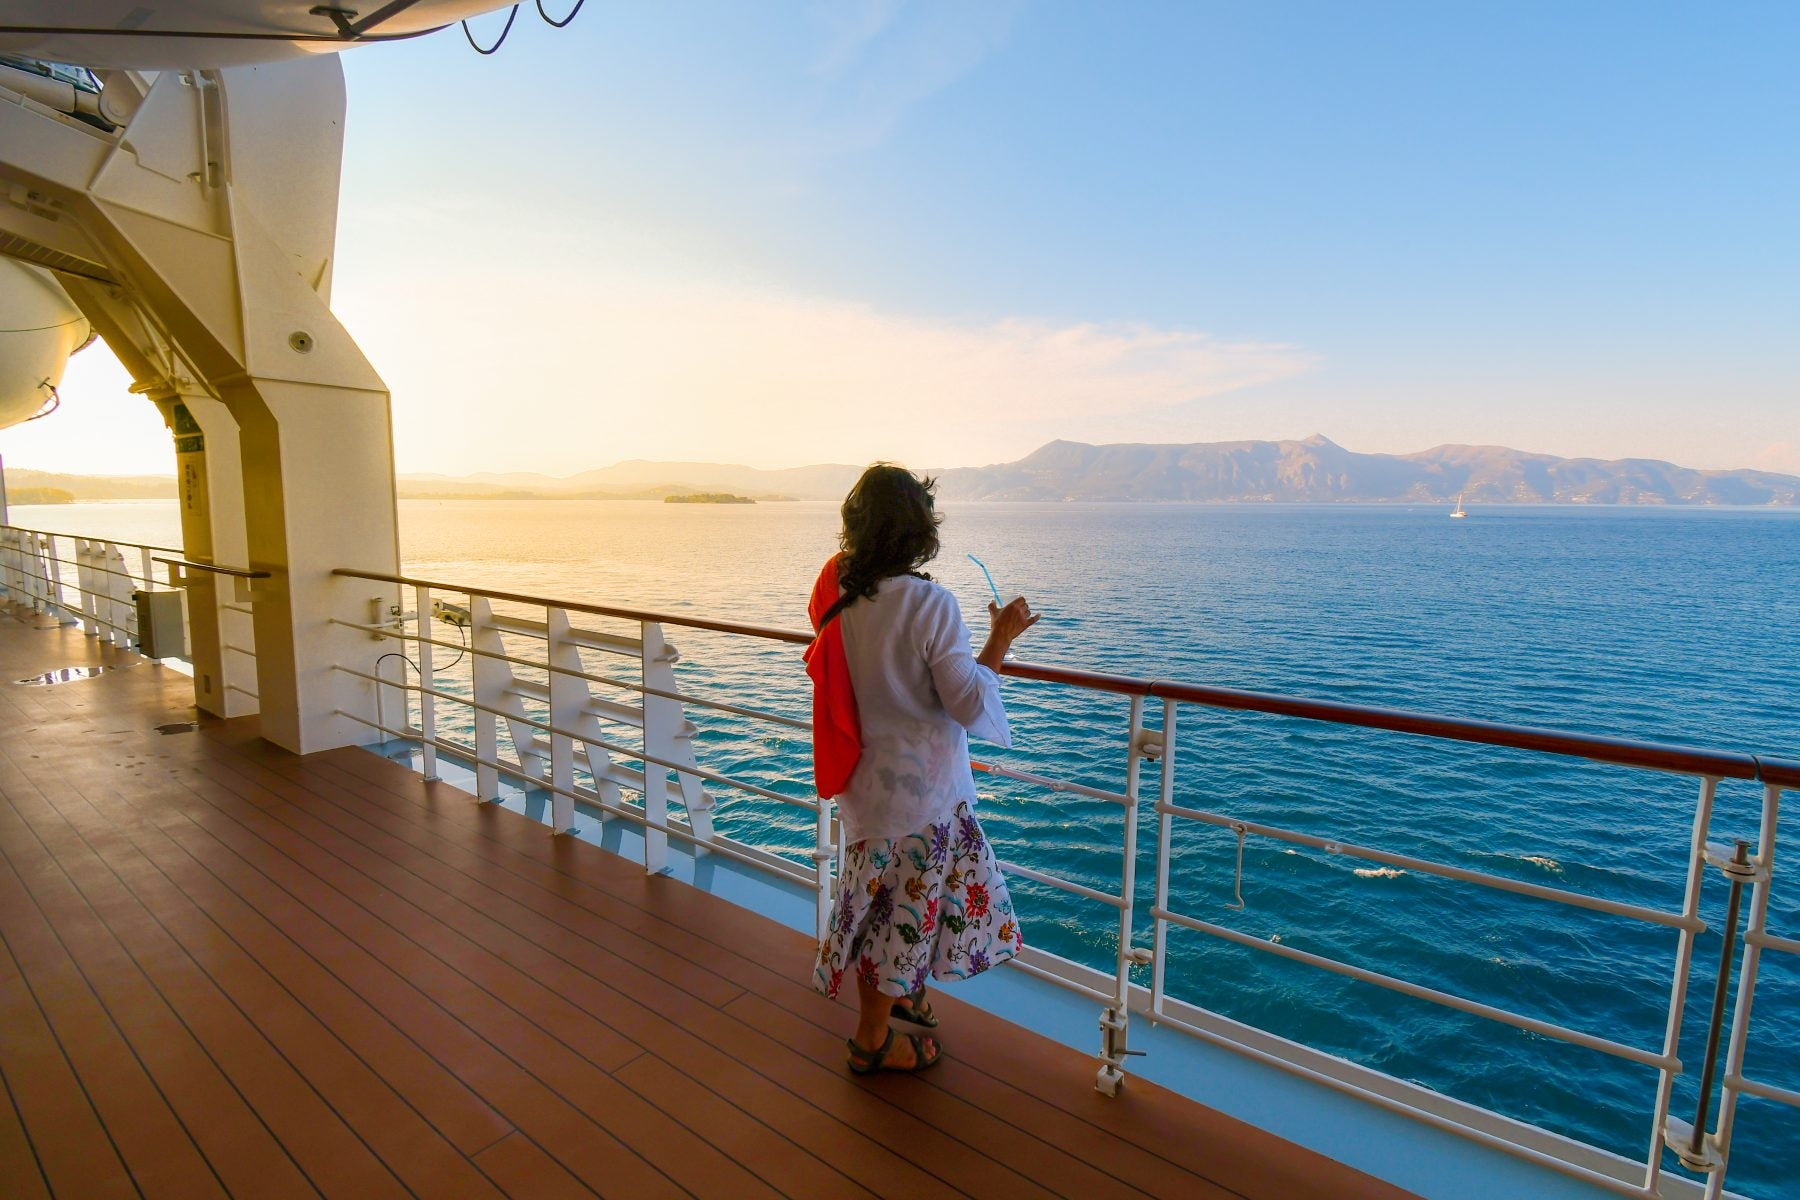 Cruises Aren't Just for Couples Anymore: Solo Cruising is on the Rise, Here's What You Need to Know